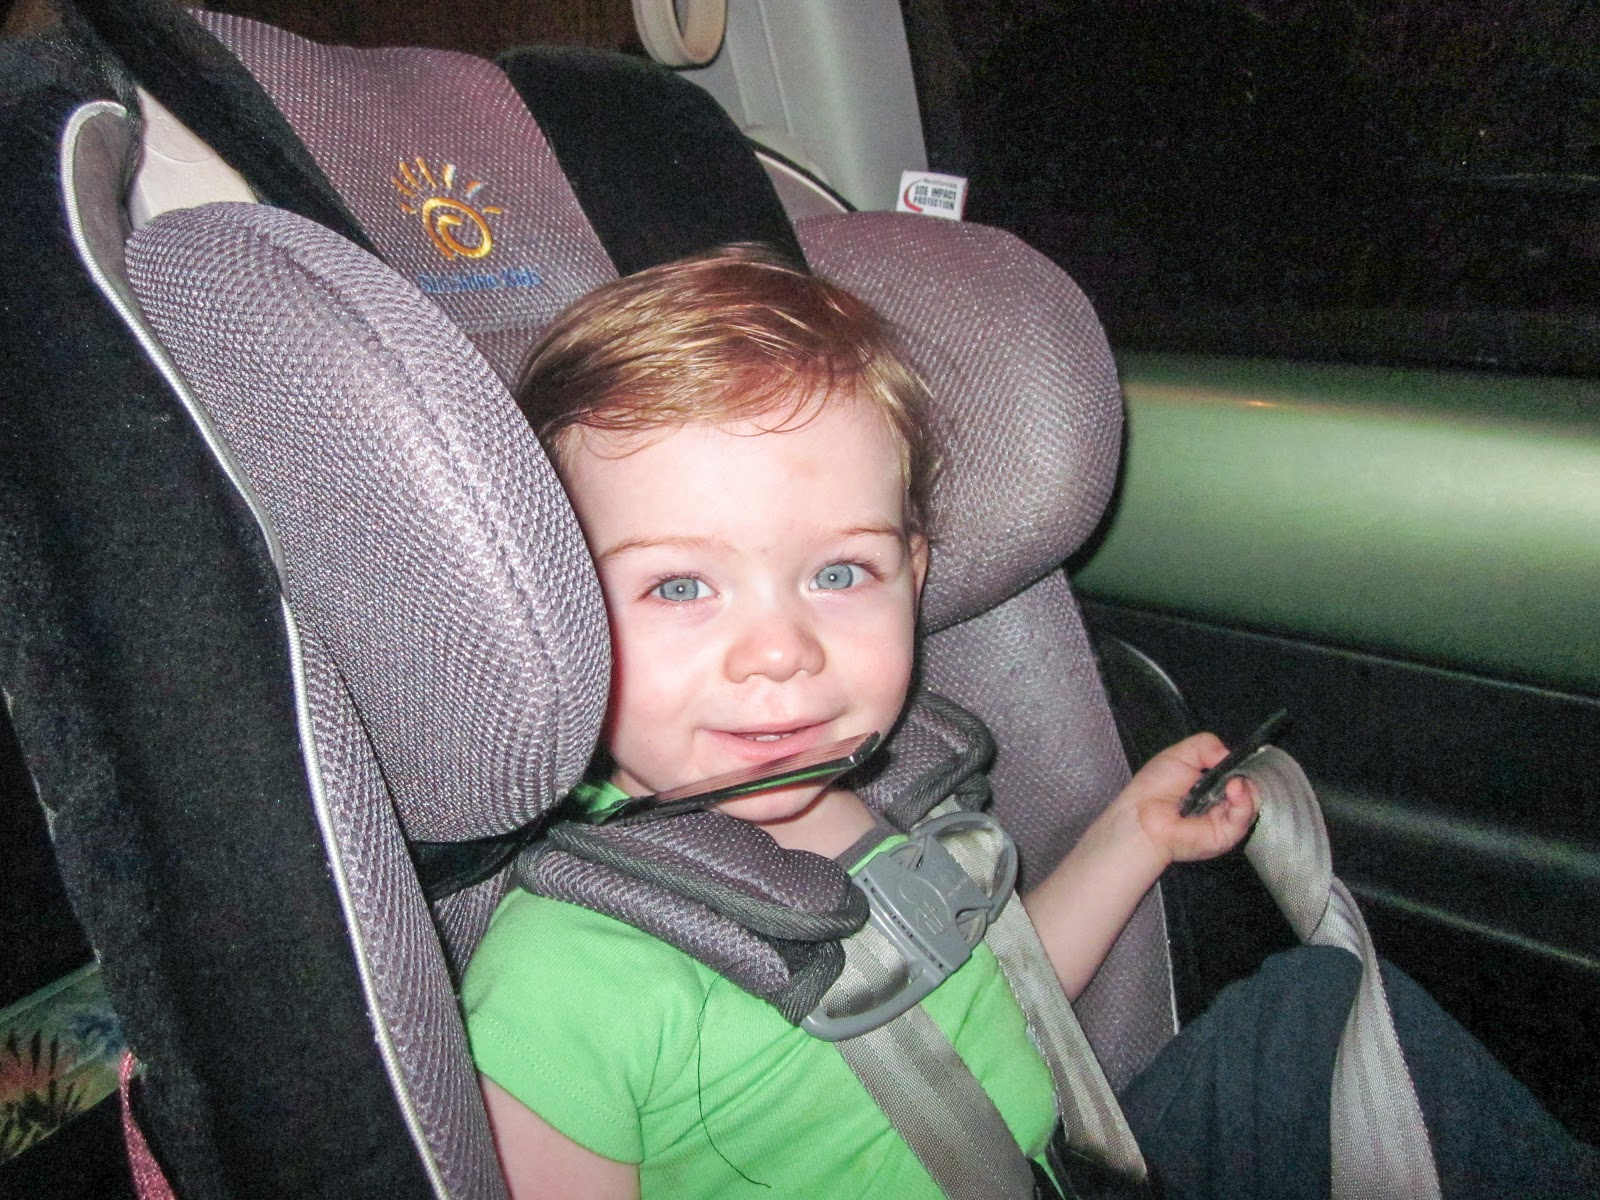 Baby Car Seat Test Buckle Up Buttercup The Ins And Outs Of Proper Harnessing